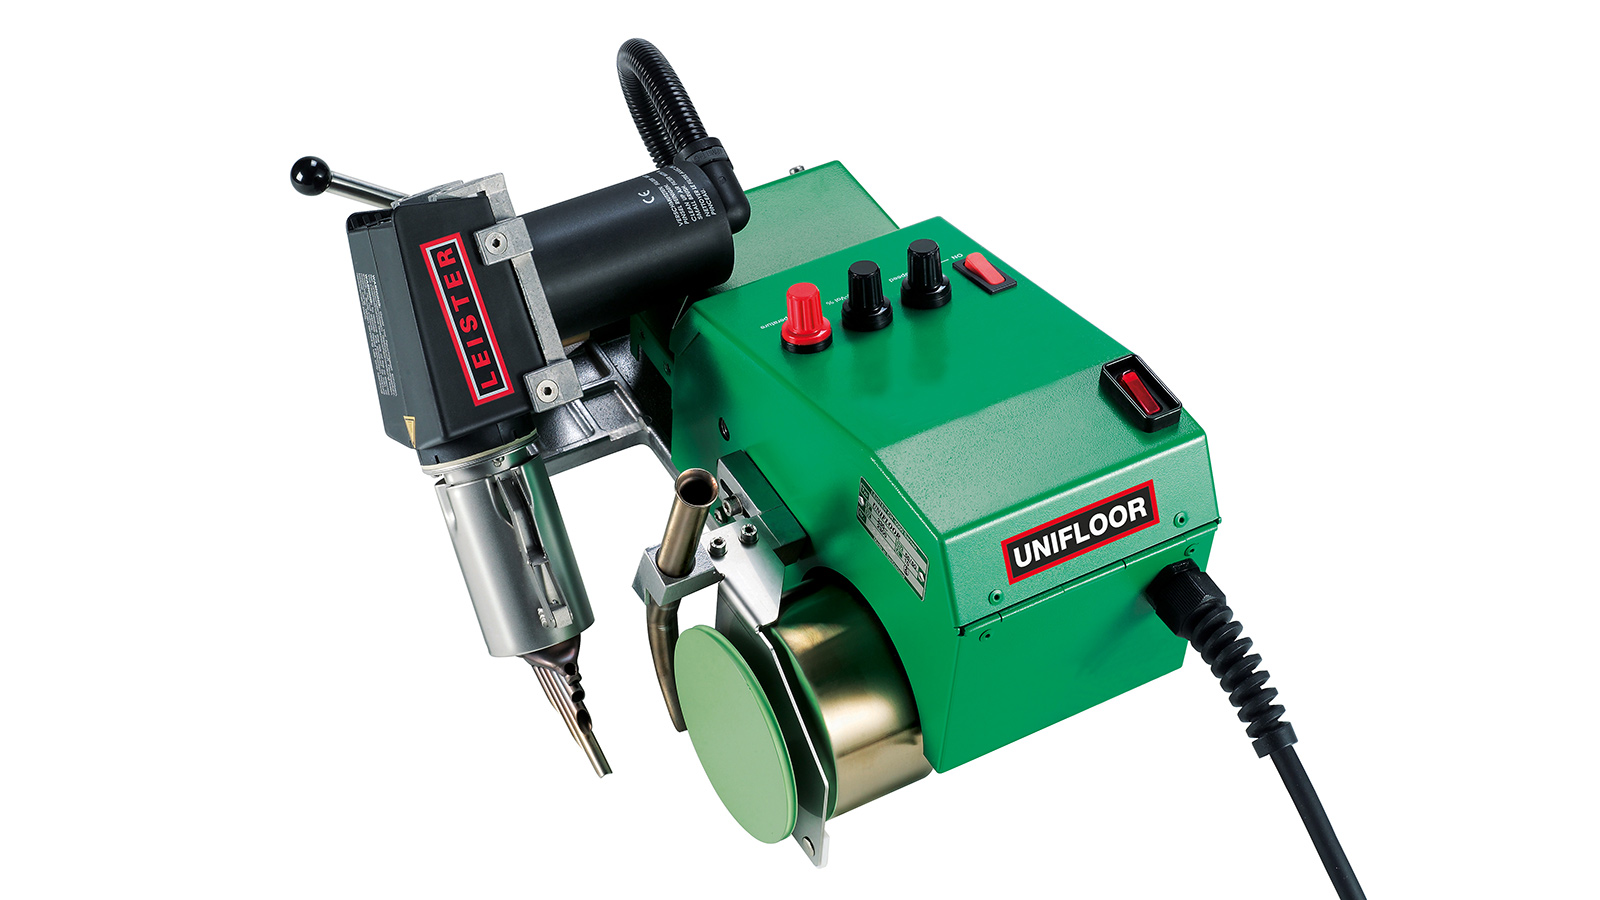 UNIFLOOR S Hot-air welder